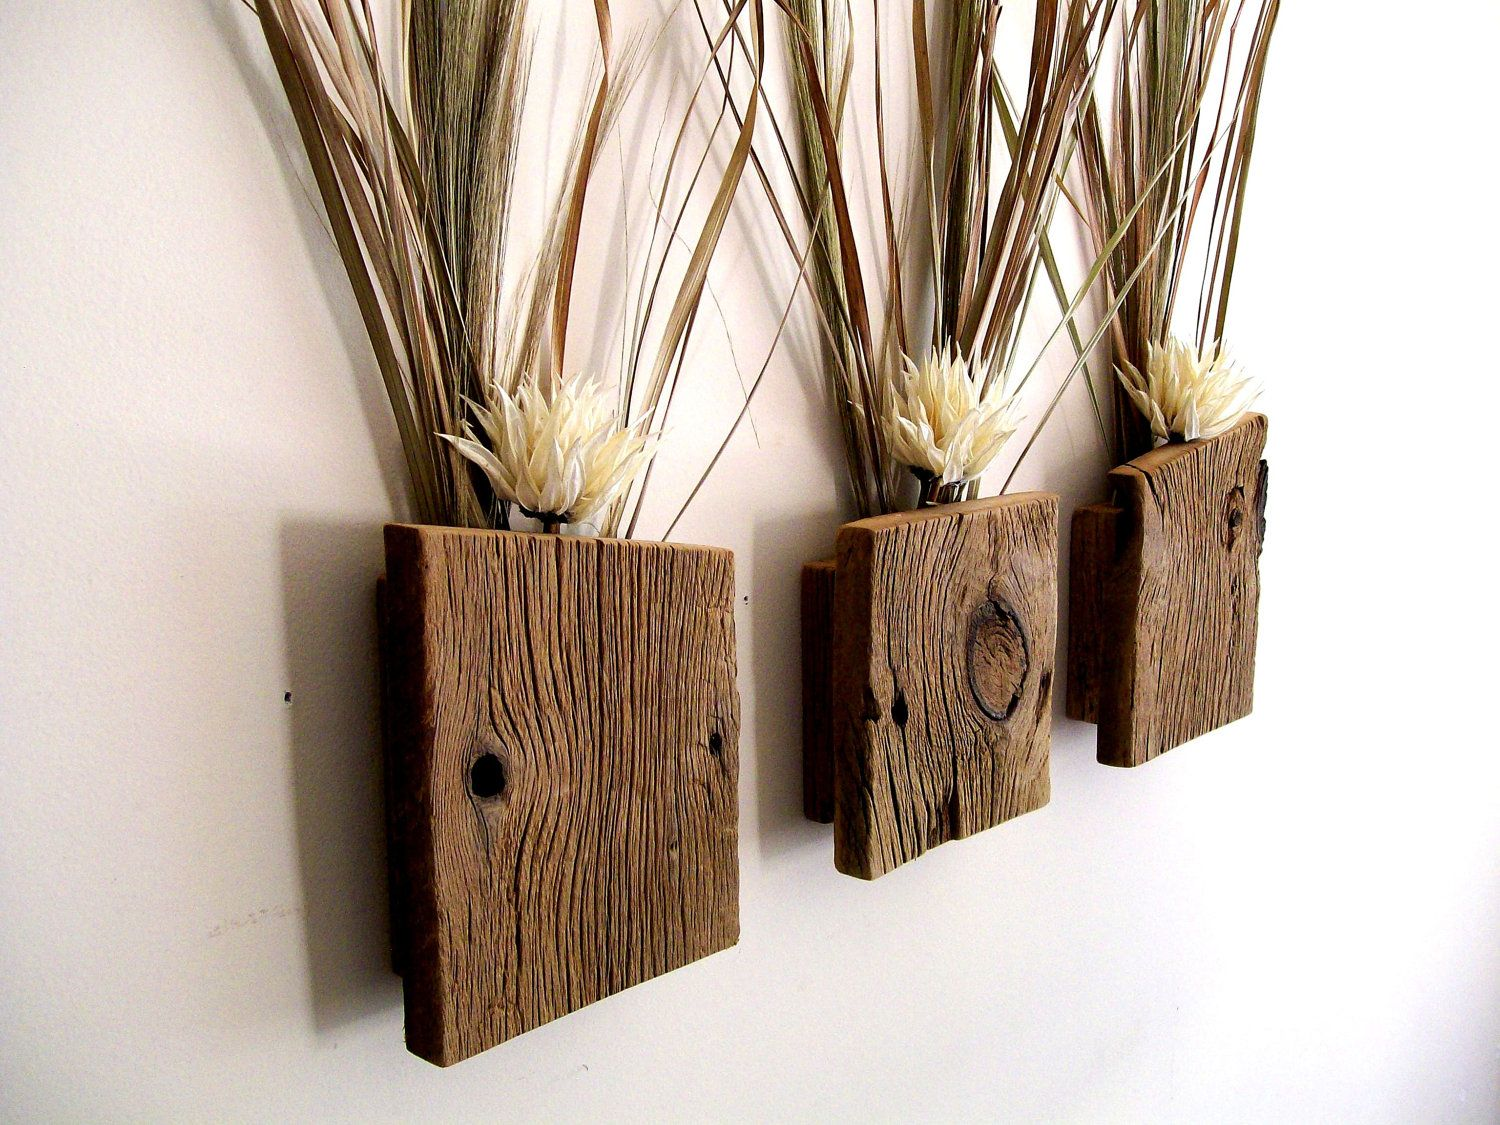 Rustic Wooden Decor Set Of 3 Rustic Reclaimed Barn Wood Wall Vase Flower